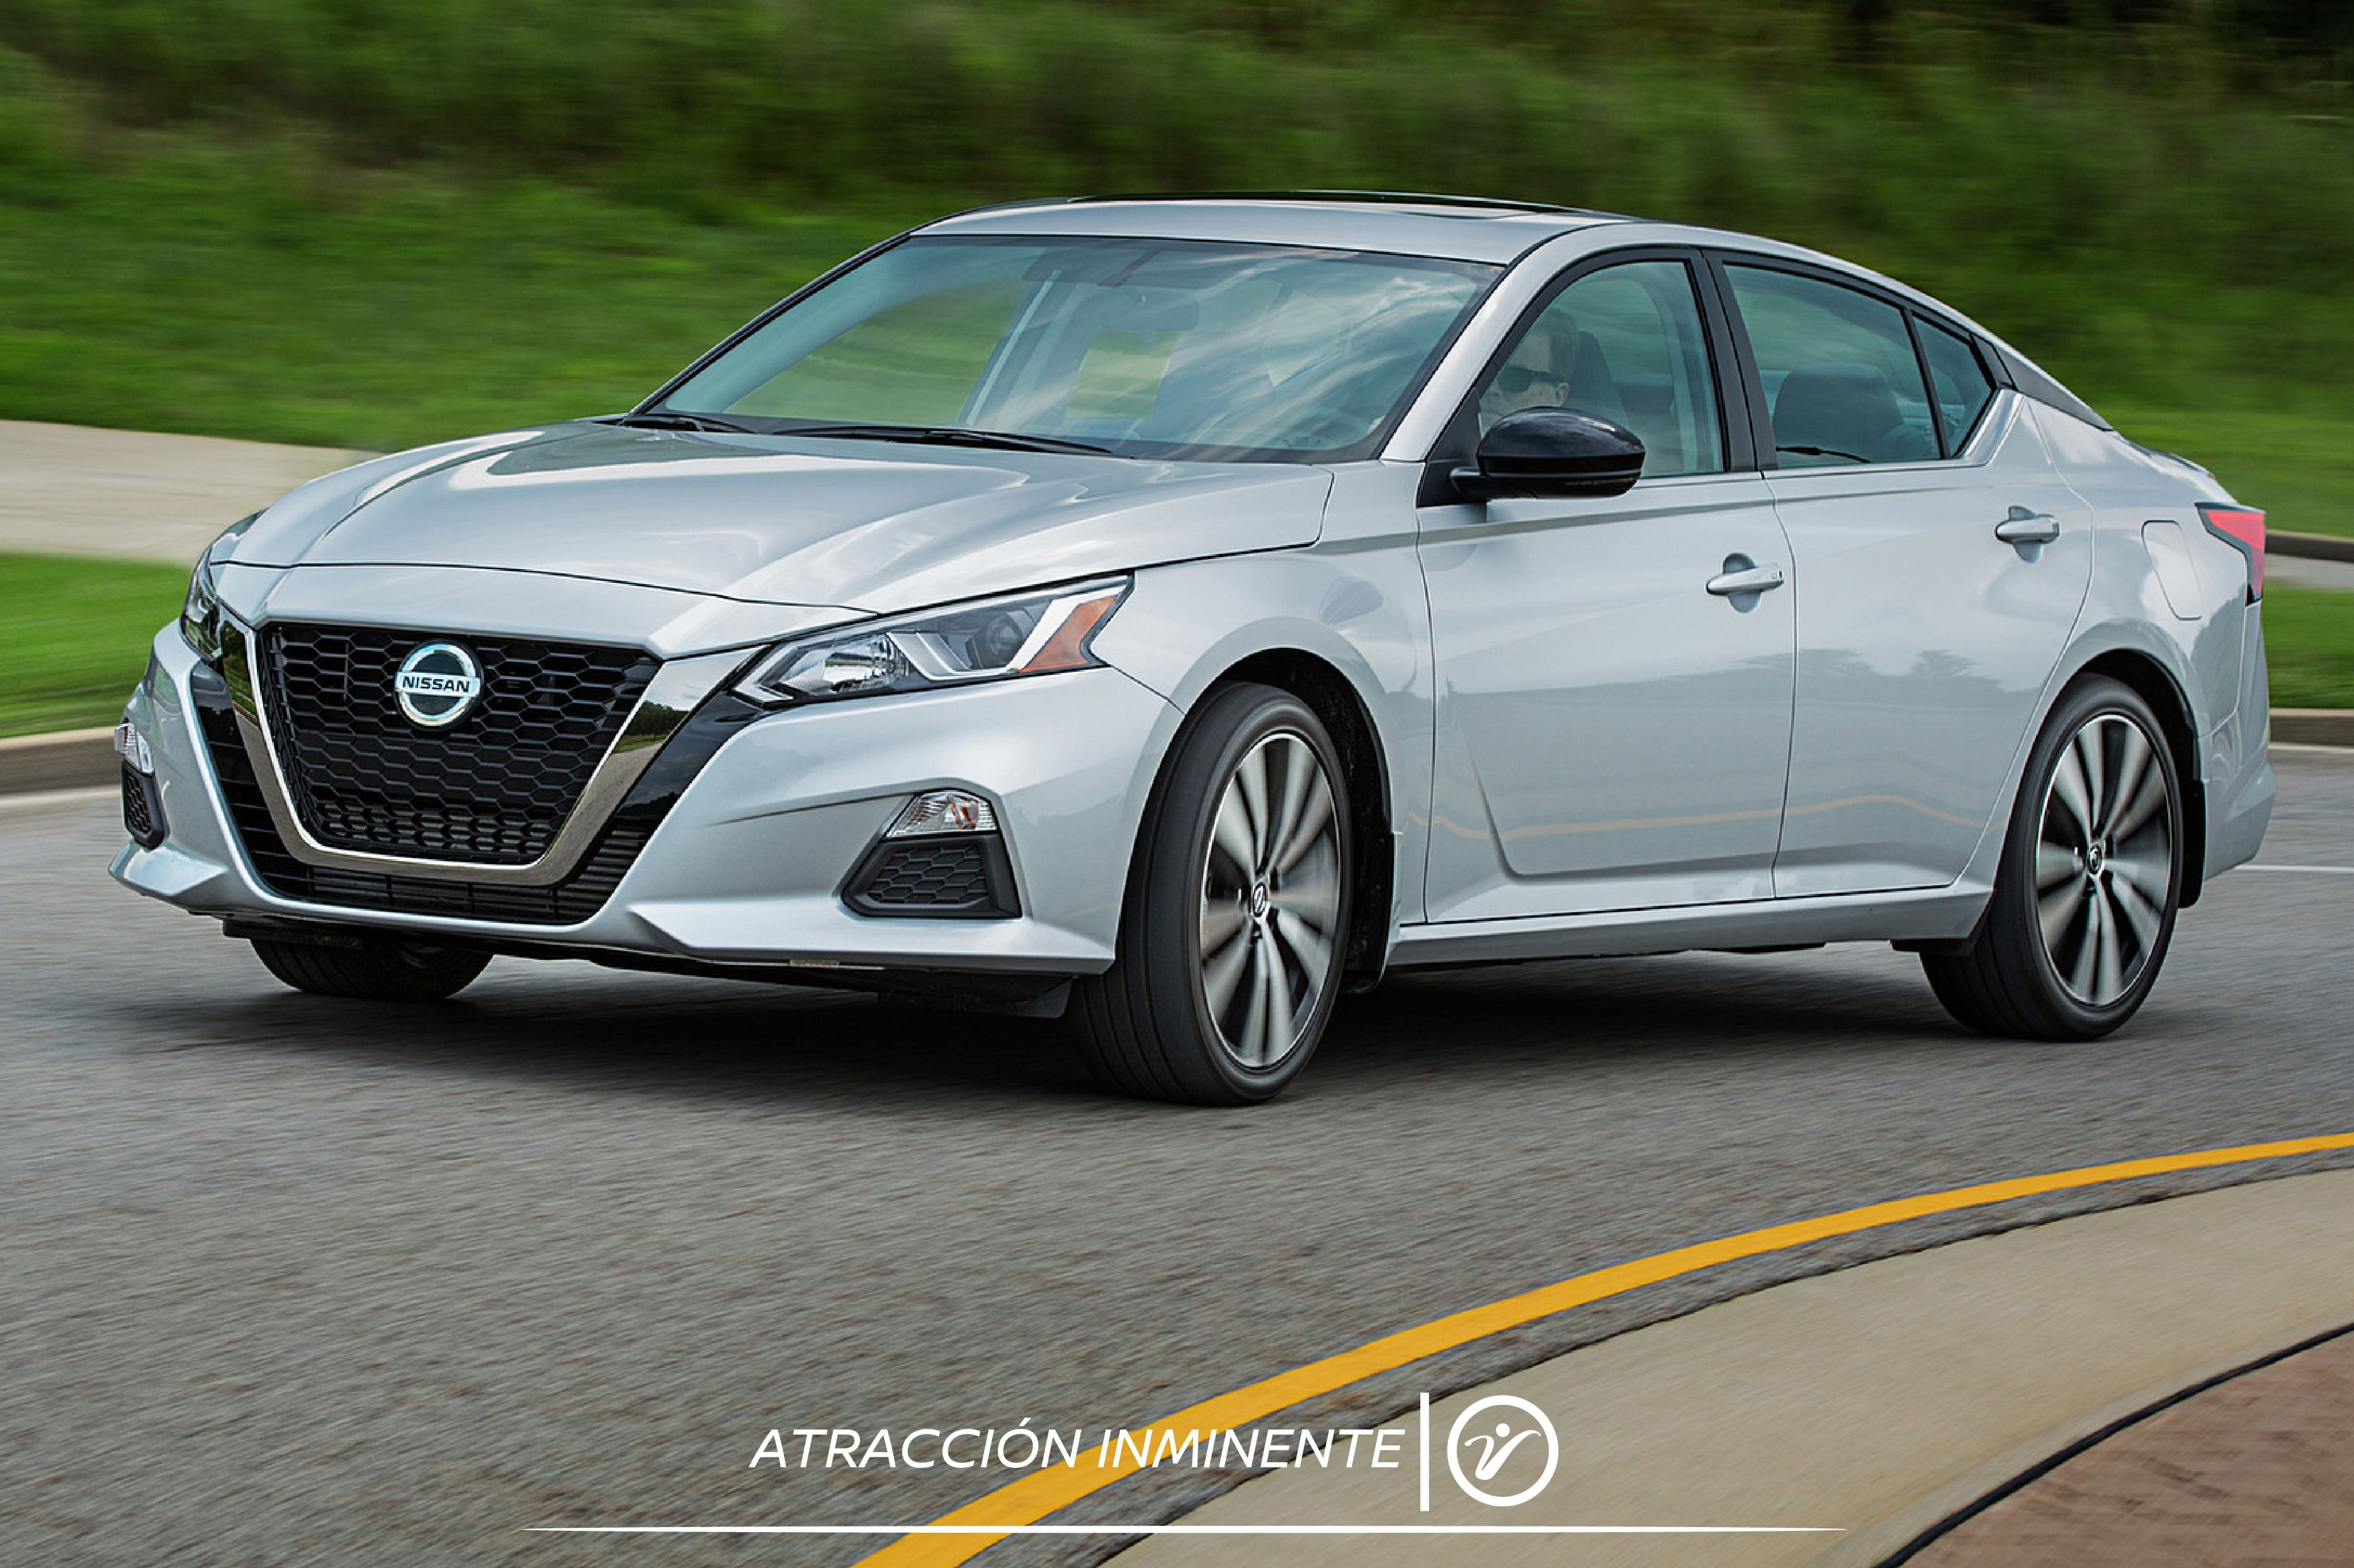 Pin by JM on Luxury life | Nissan altima, Nissan, Nissan maxima